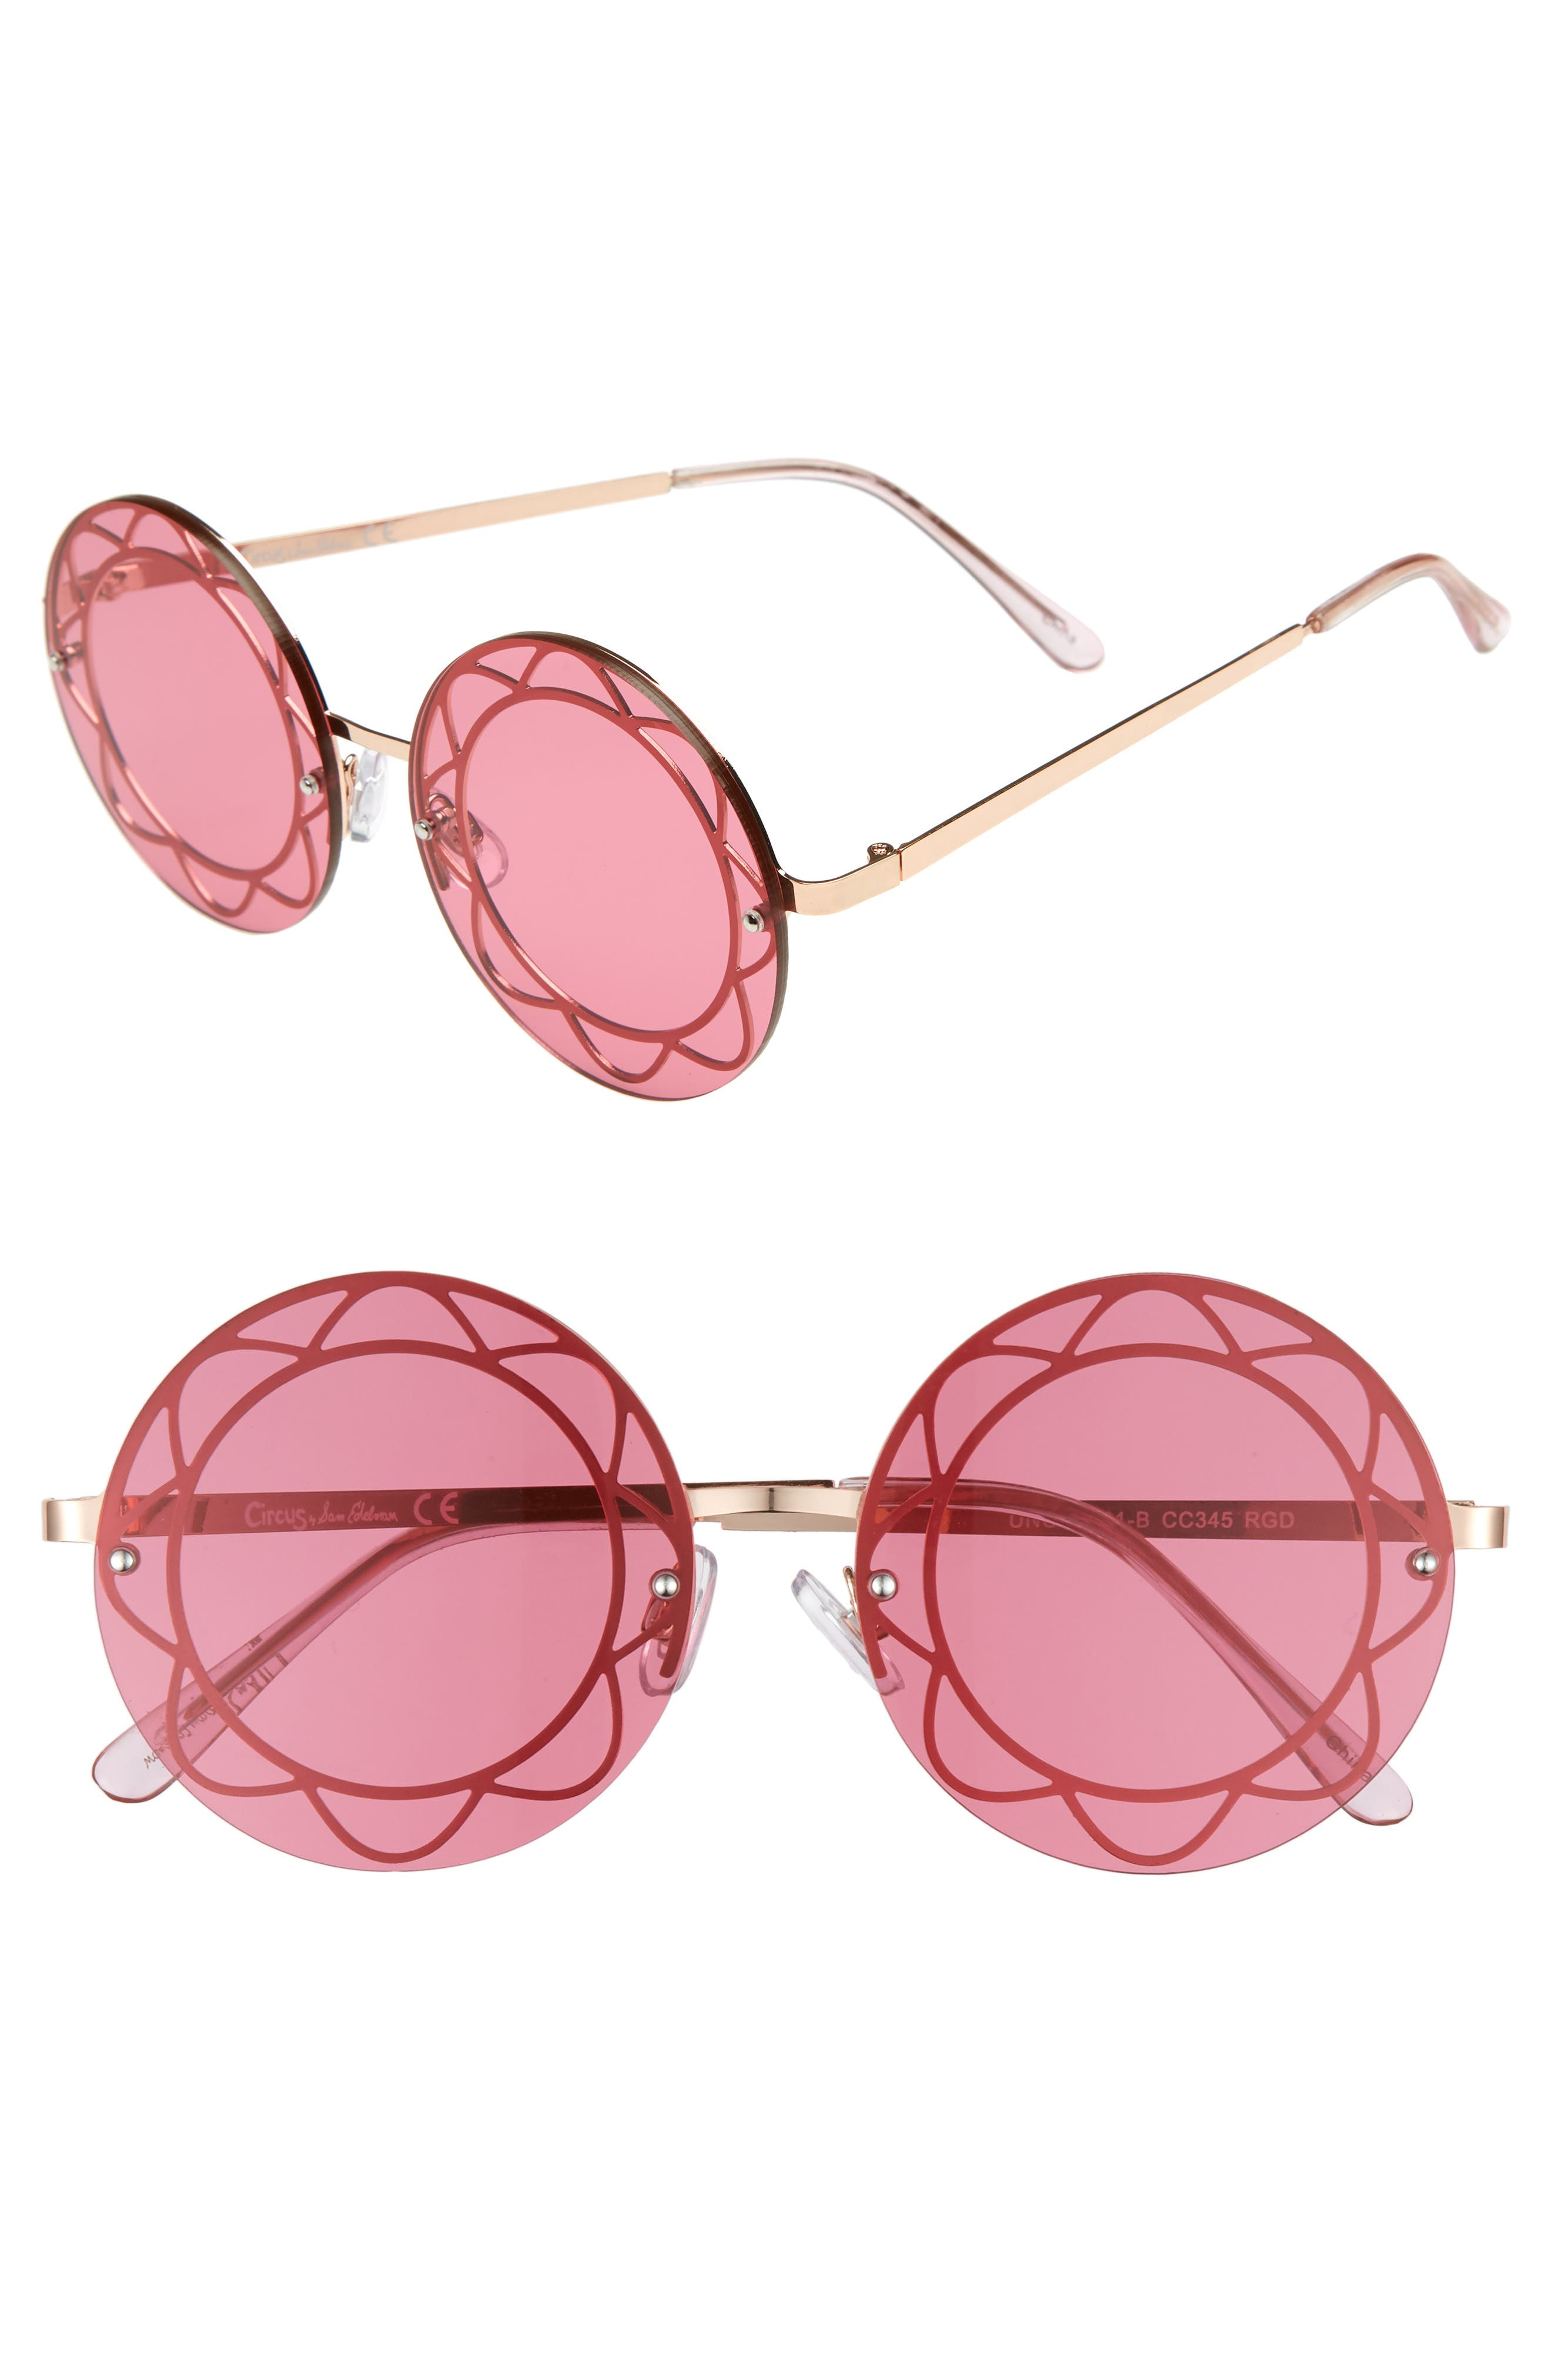 55mm Round Sunglasses,                             Main thumbnail 1, color,                             Rose Gold/ Red Lens